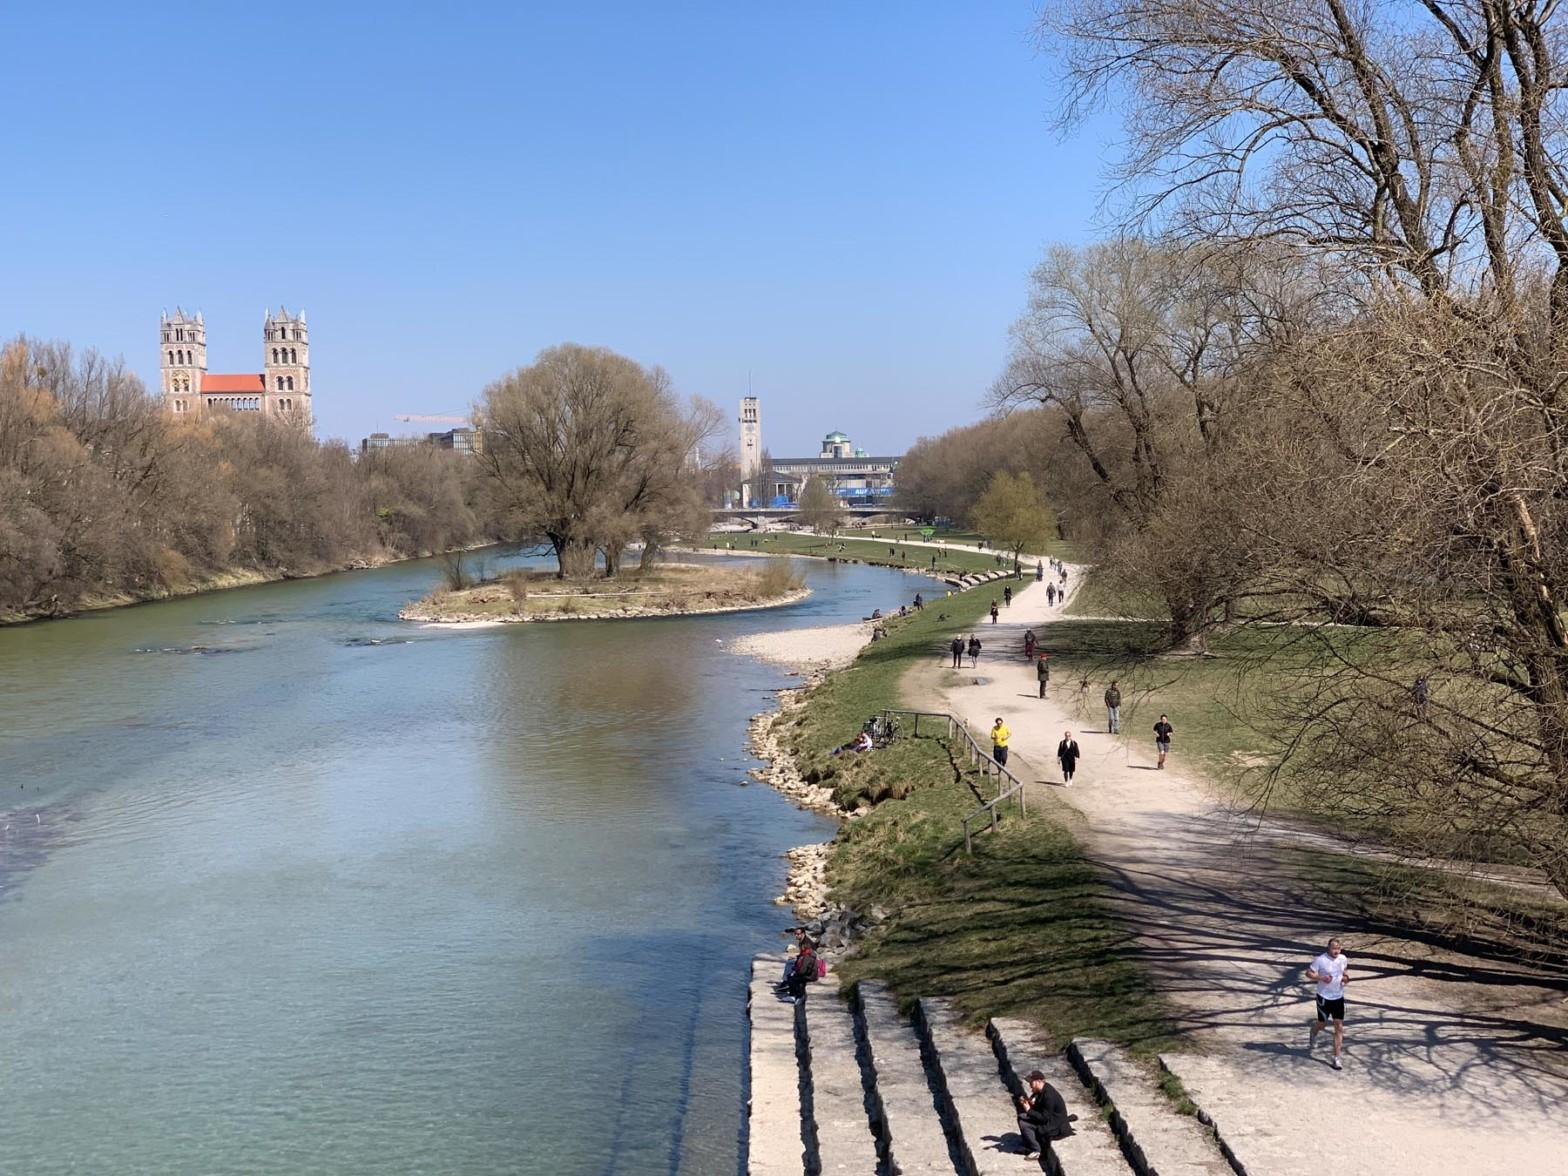 Running on the Isar in Munich, Germany